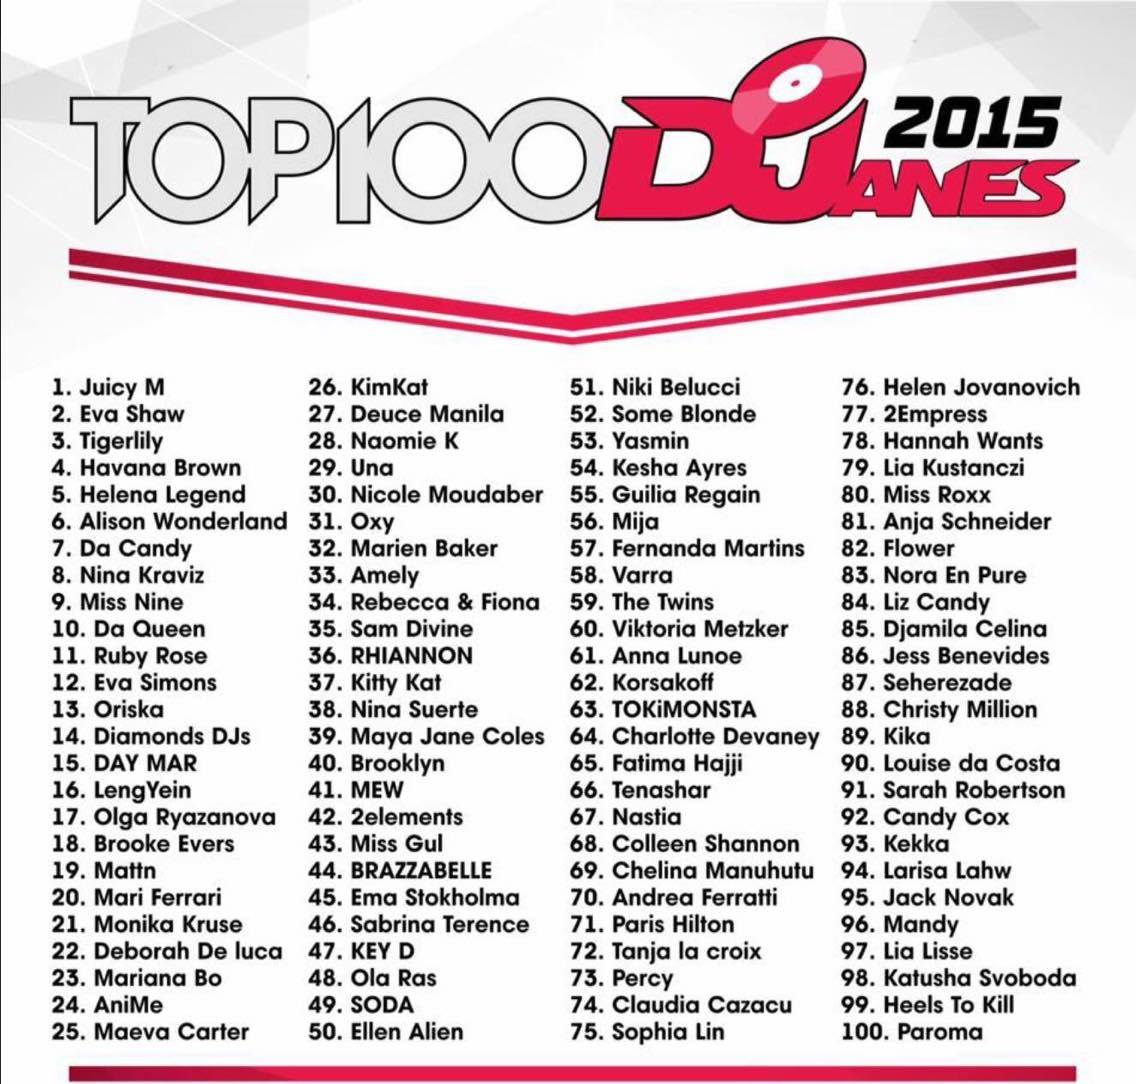 female top 100 djs